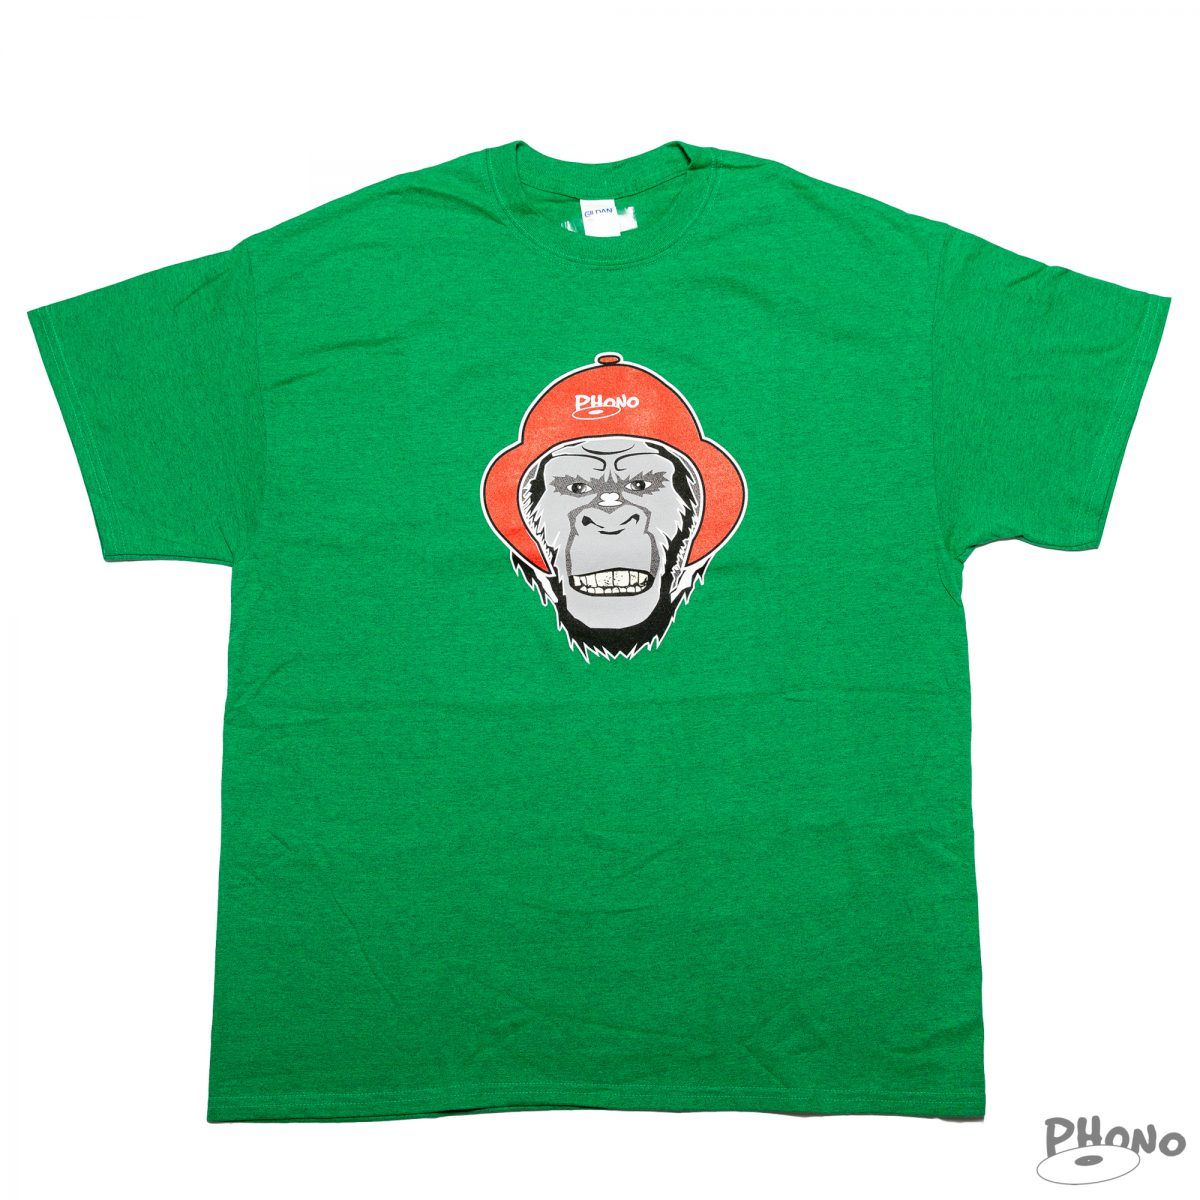 Phono_Gorilla-Green-Tshirt